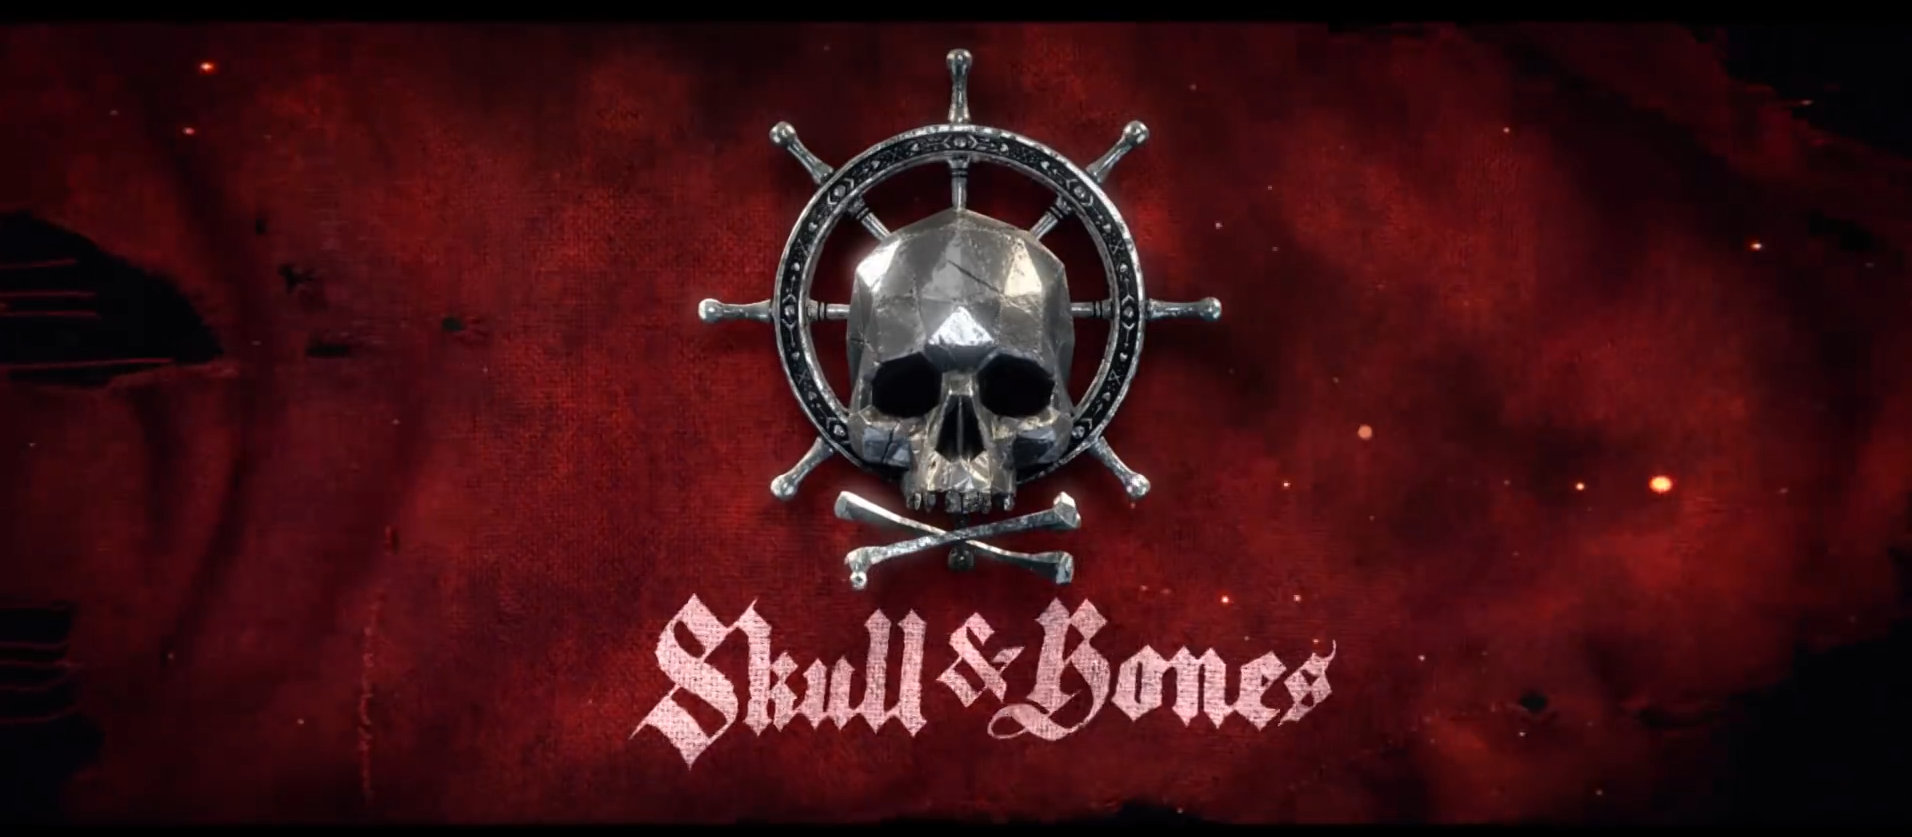 Skull and Bones E3 2017 - GhostGamers2000